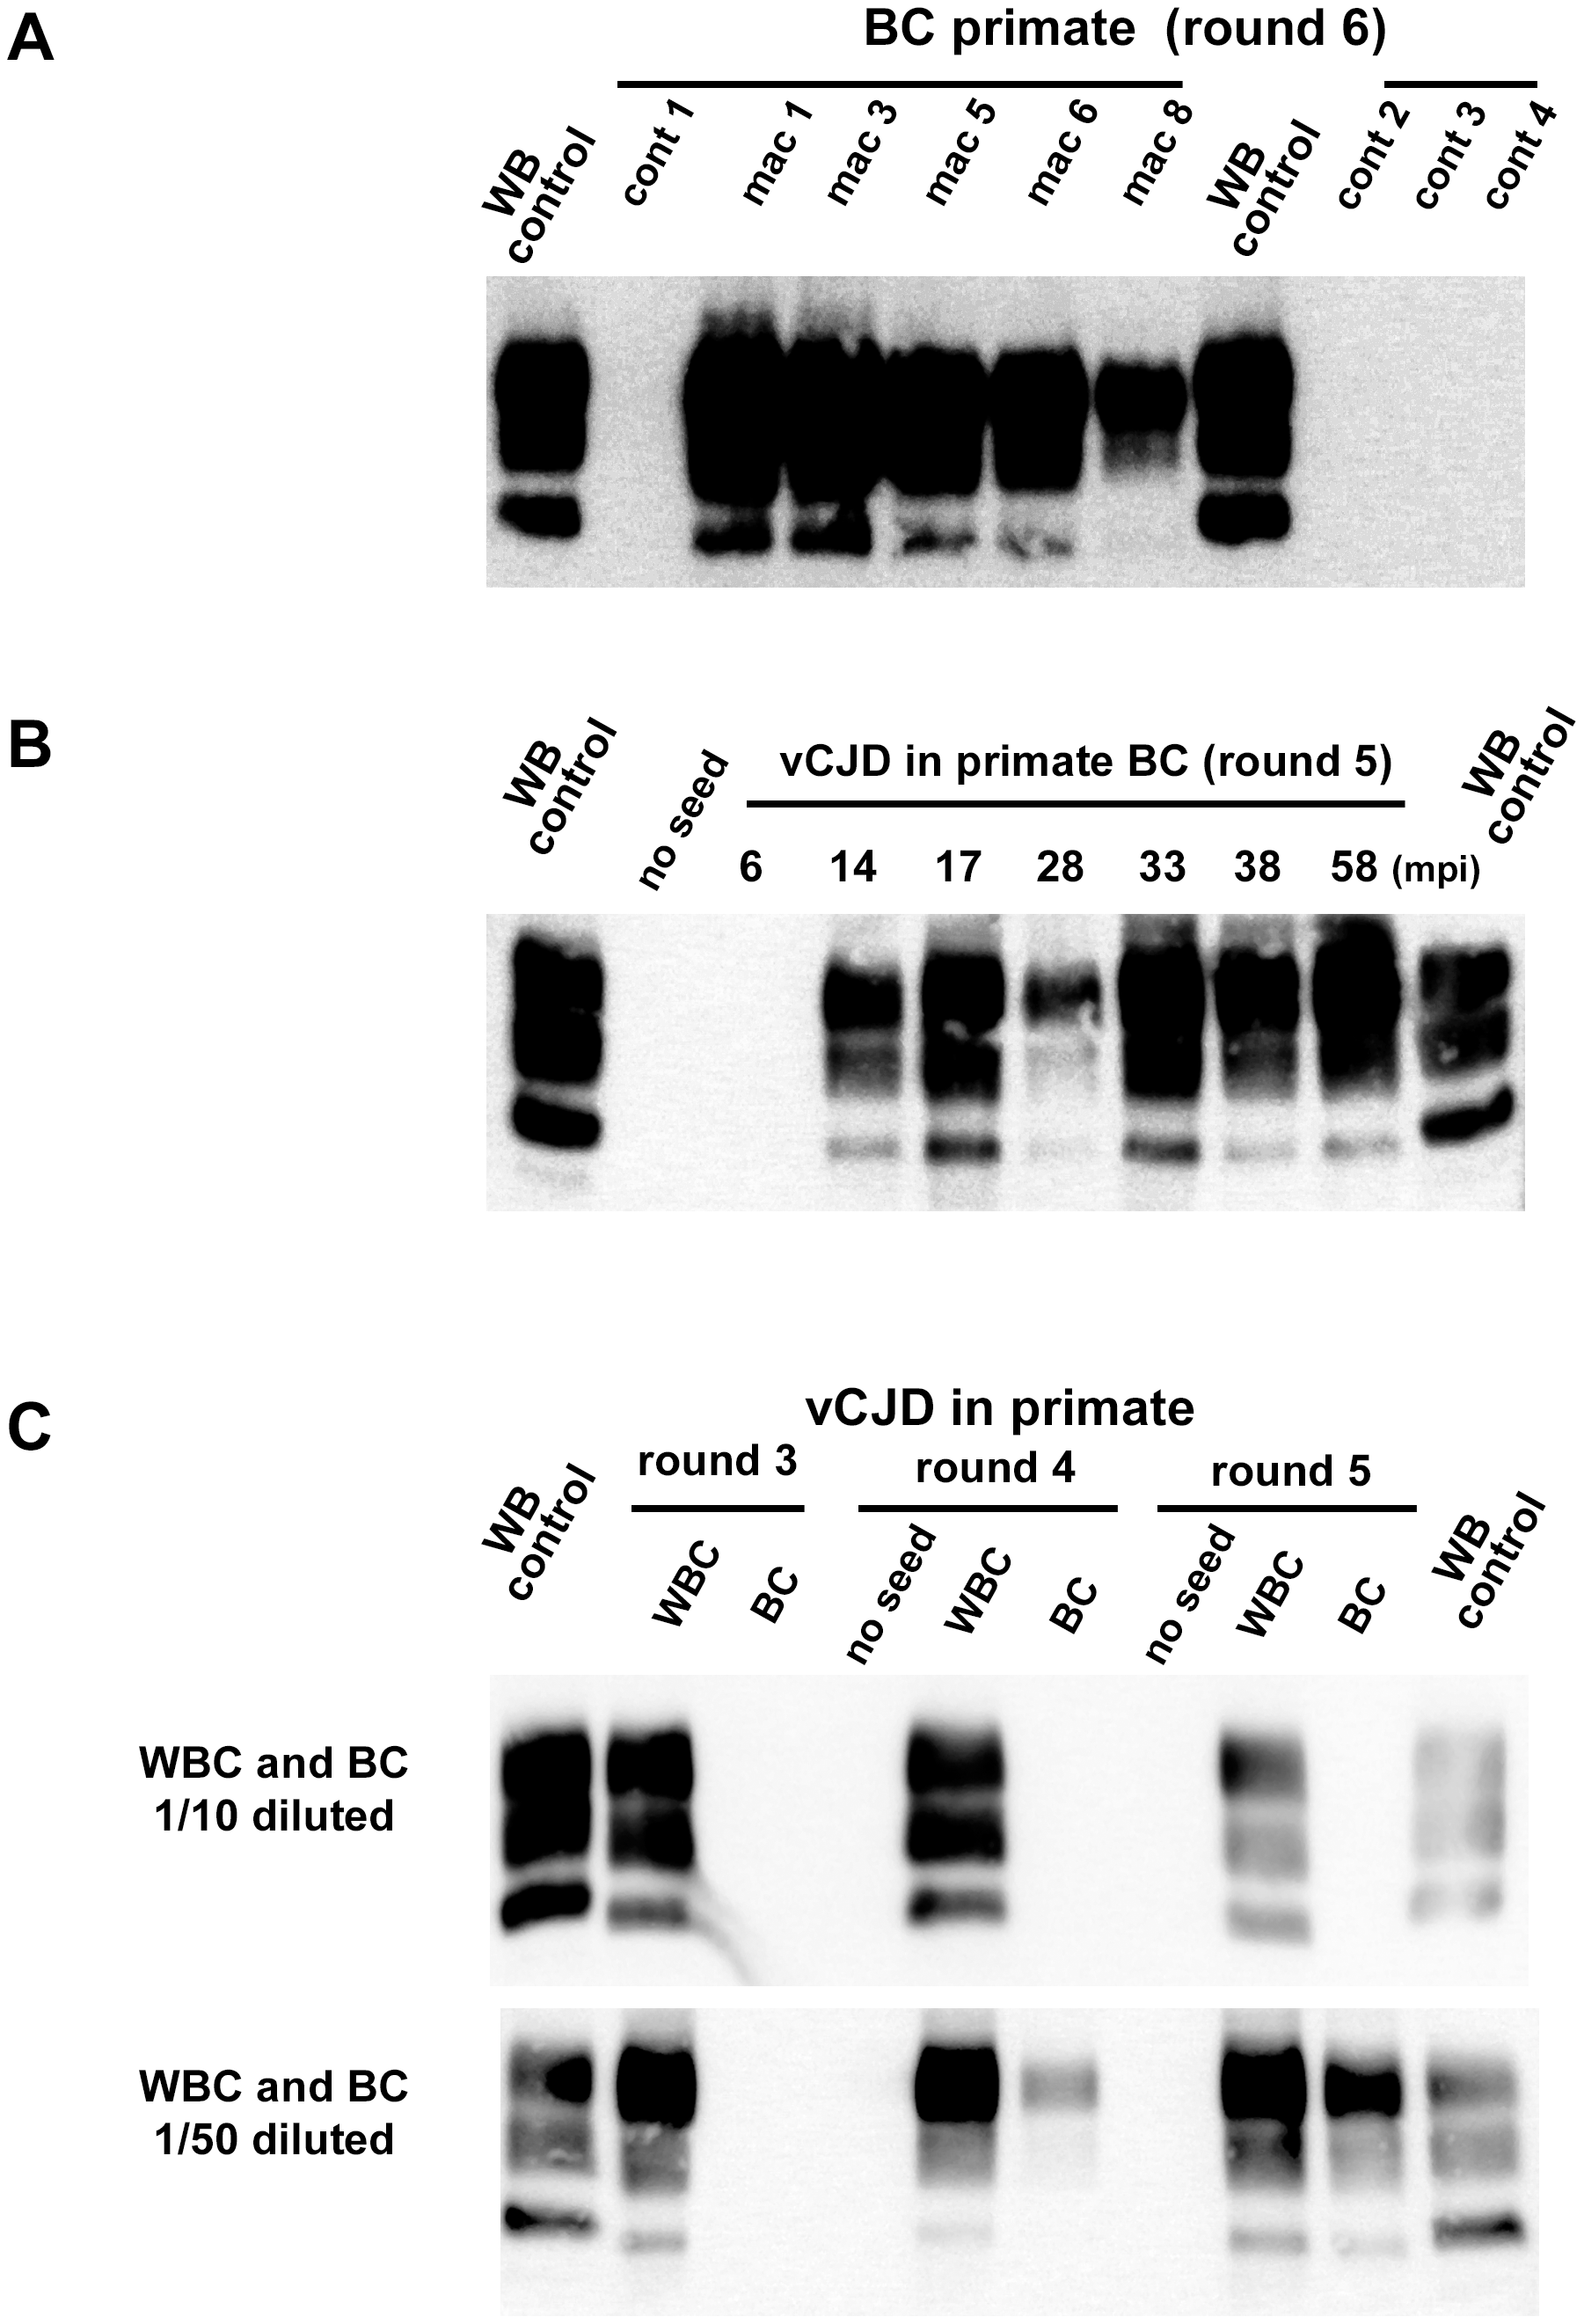 PrP<sup>res</sup> in PMCA reactions seeded with blood samples from vCJD infected and healthy primates.